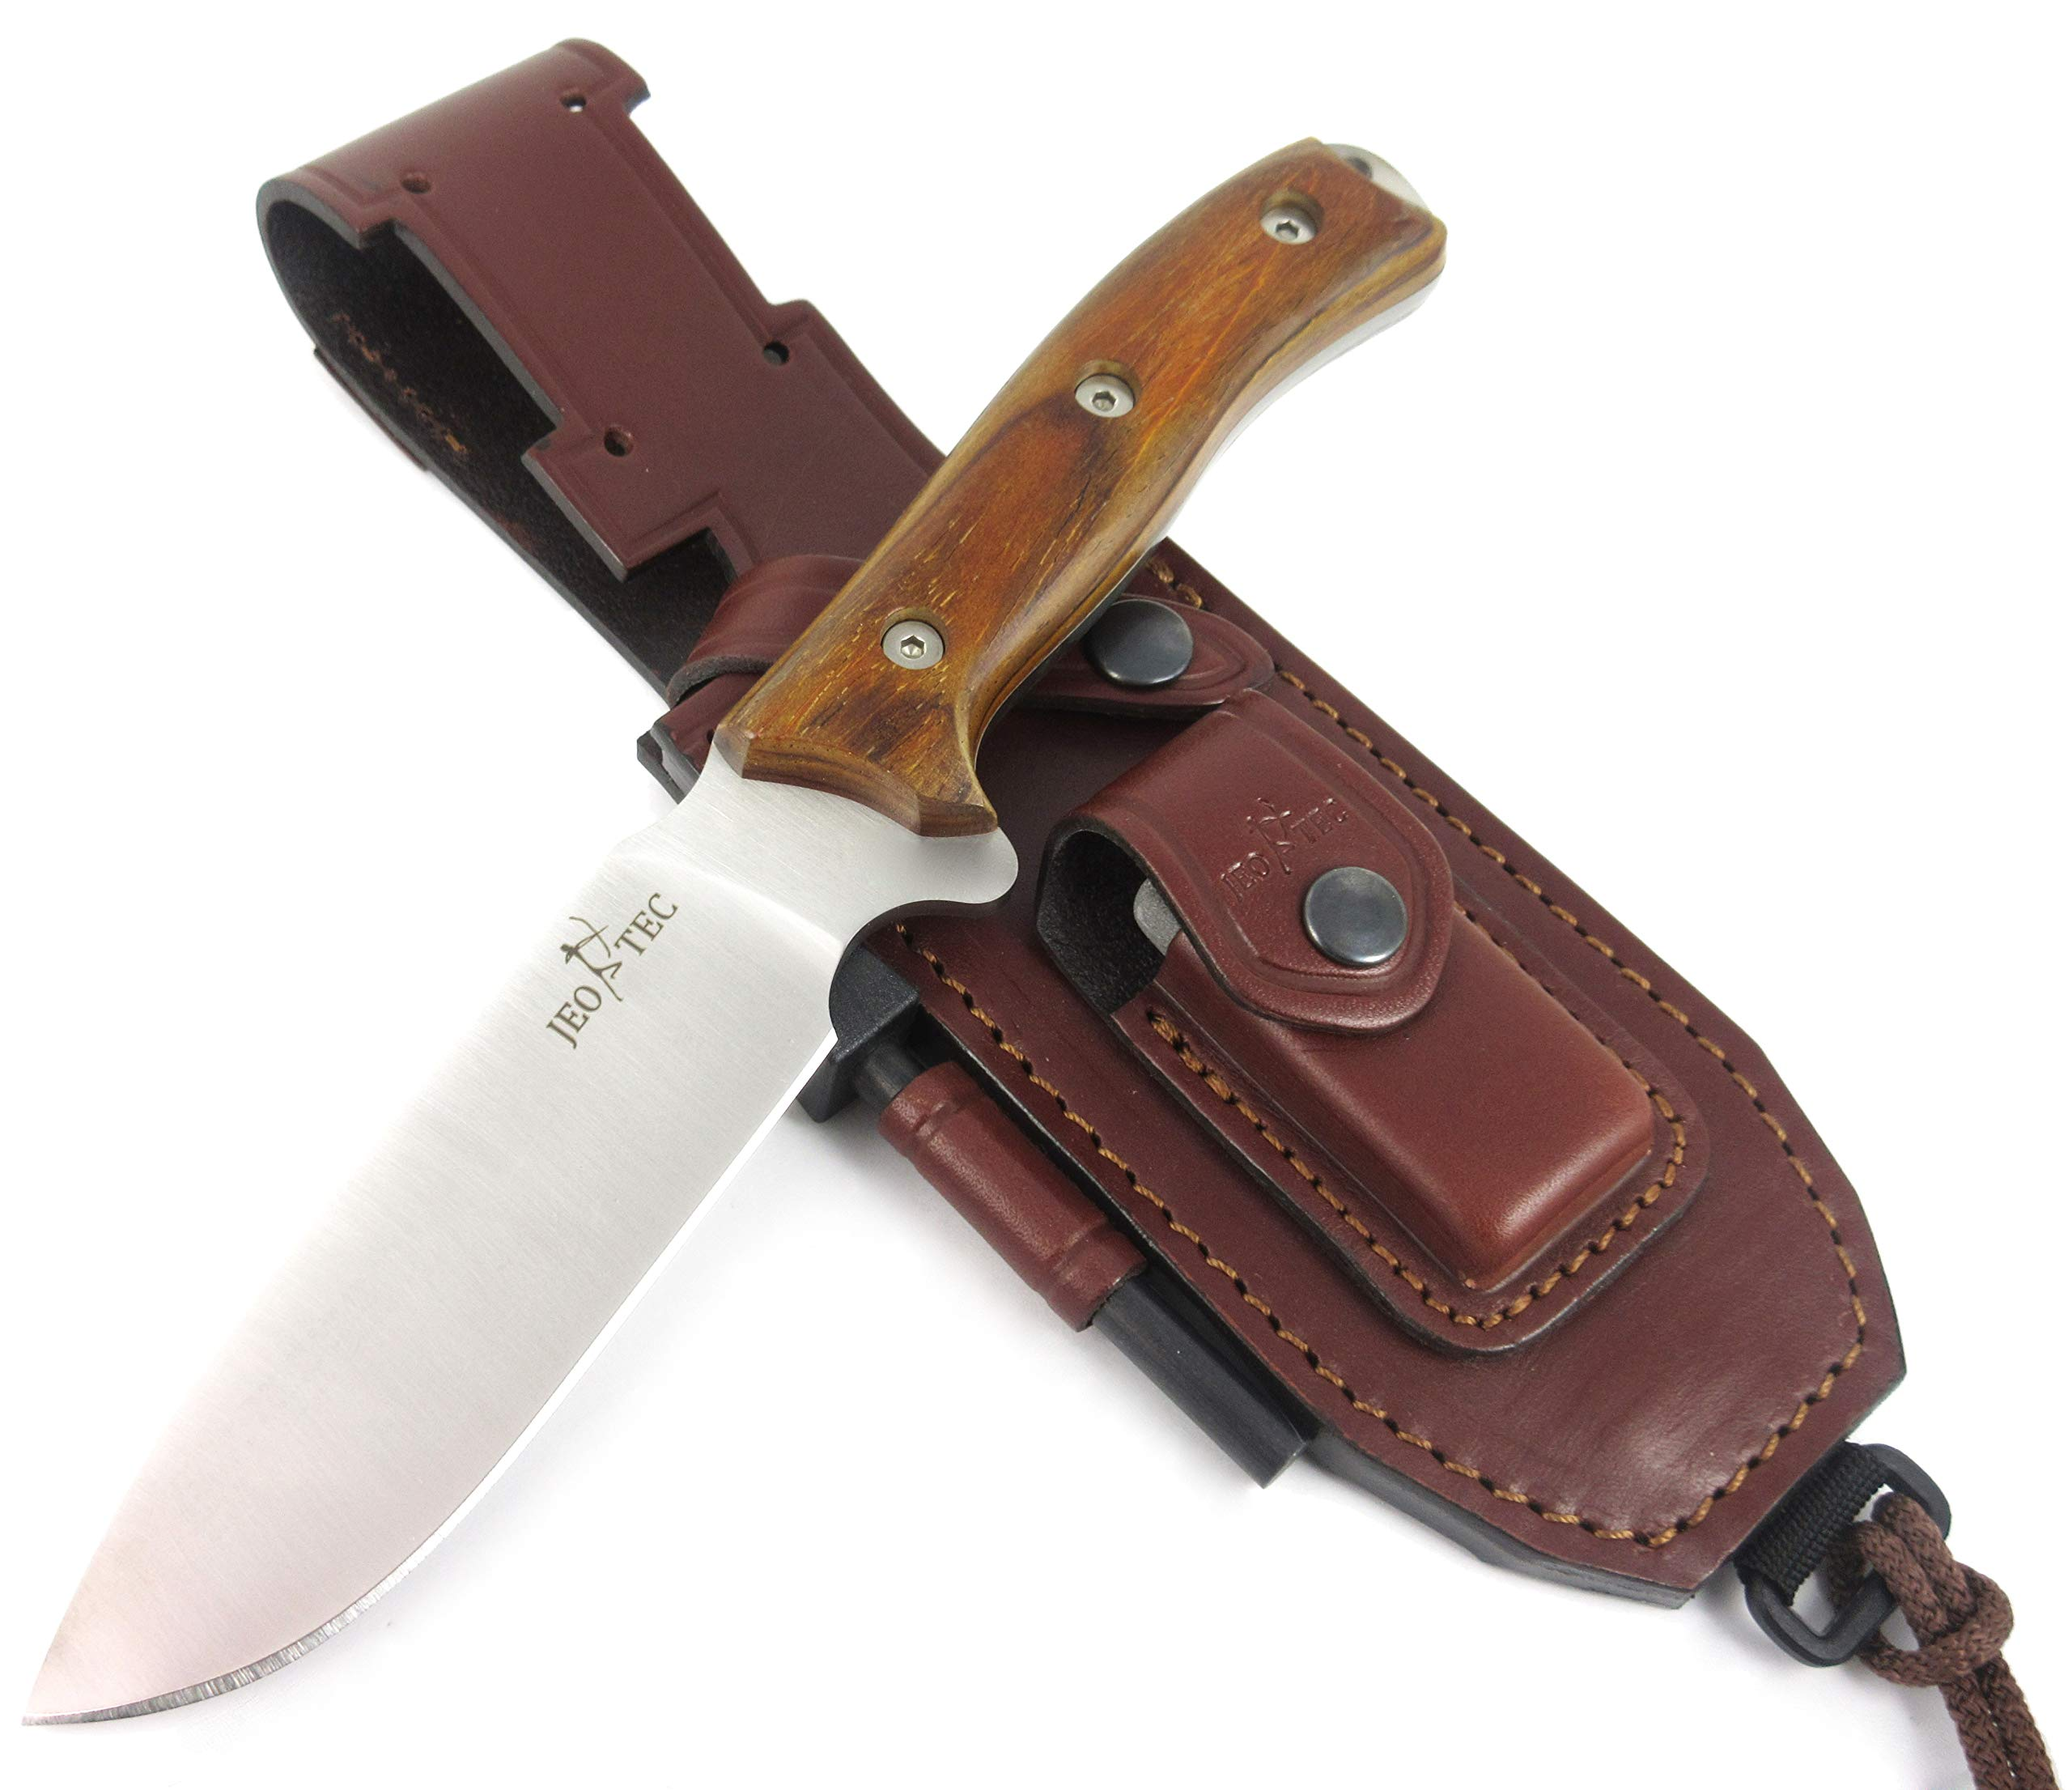 JEO-TEC Nº7 Bushcraft Survival Hunting Knife - BOHLER N690C Stainless Steel, Multi-positioned Sheath - Handmade